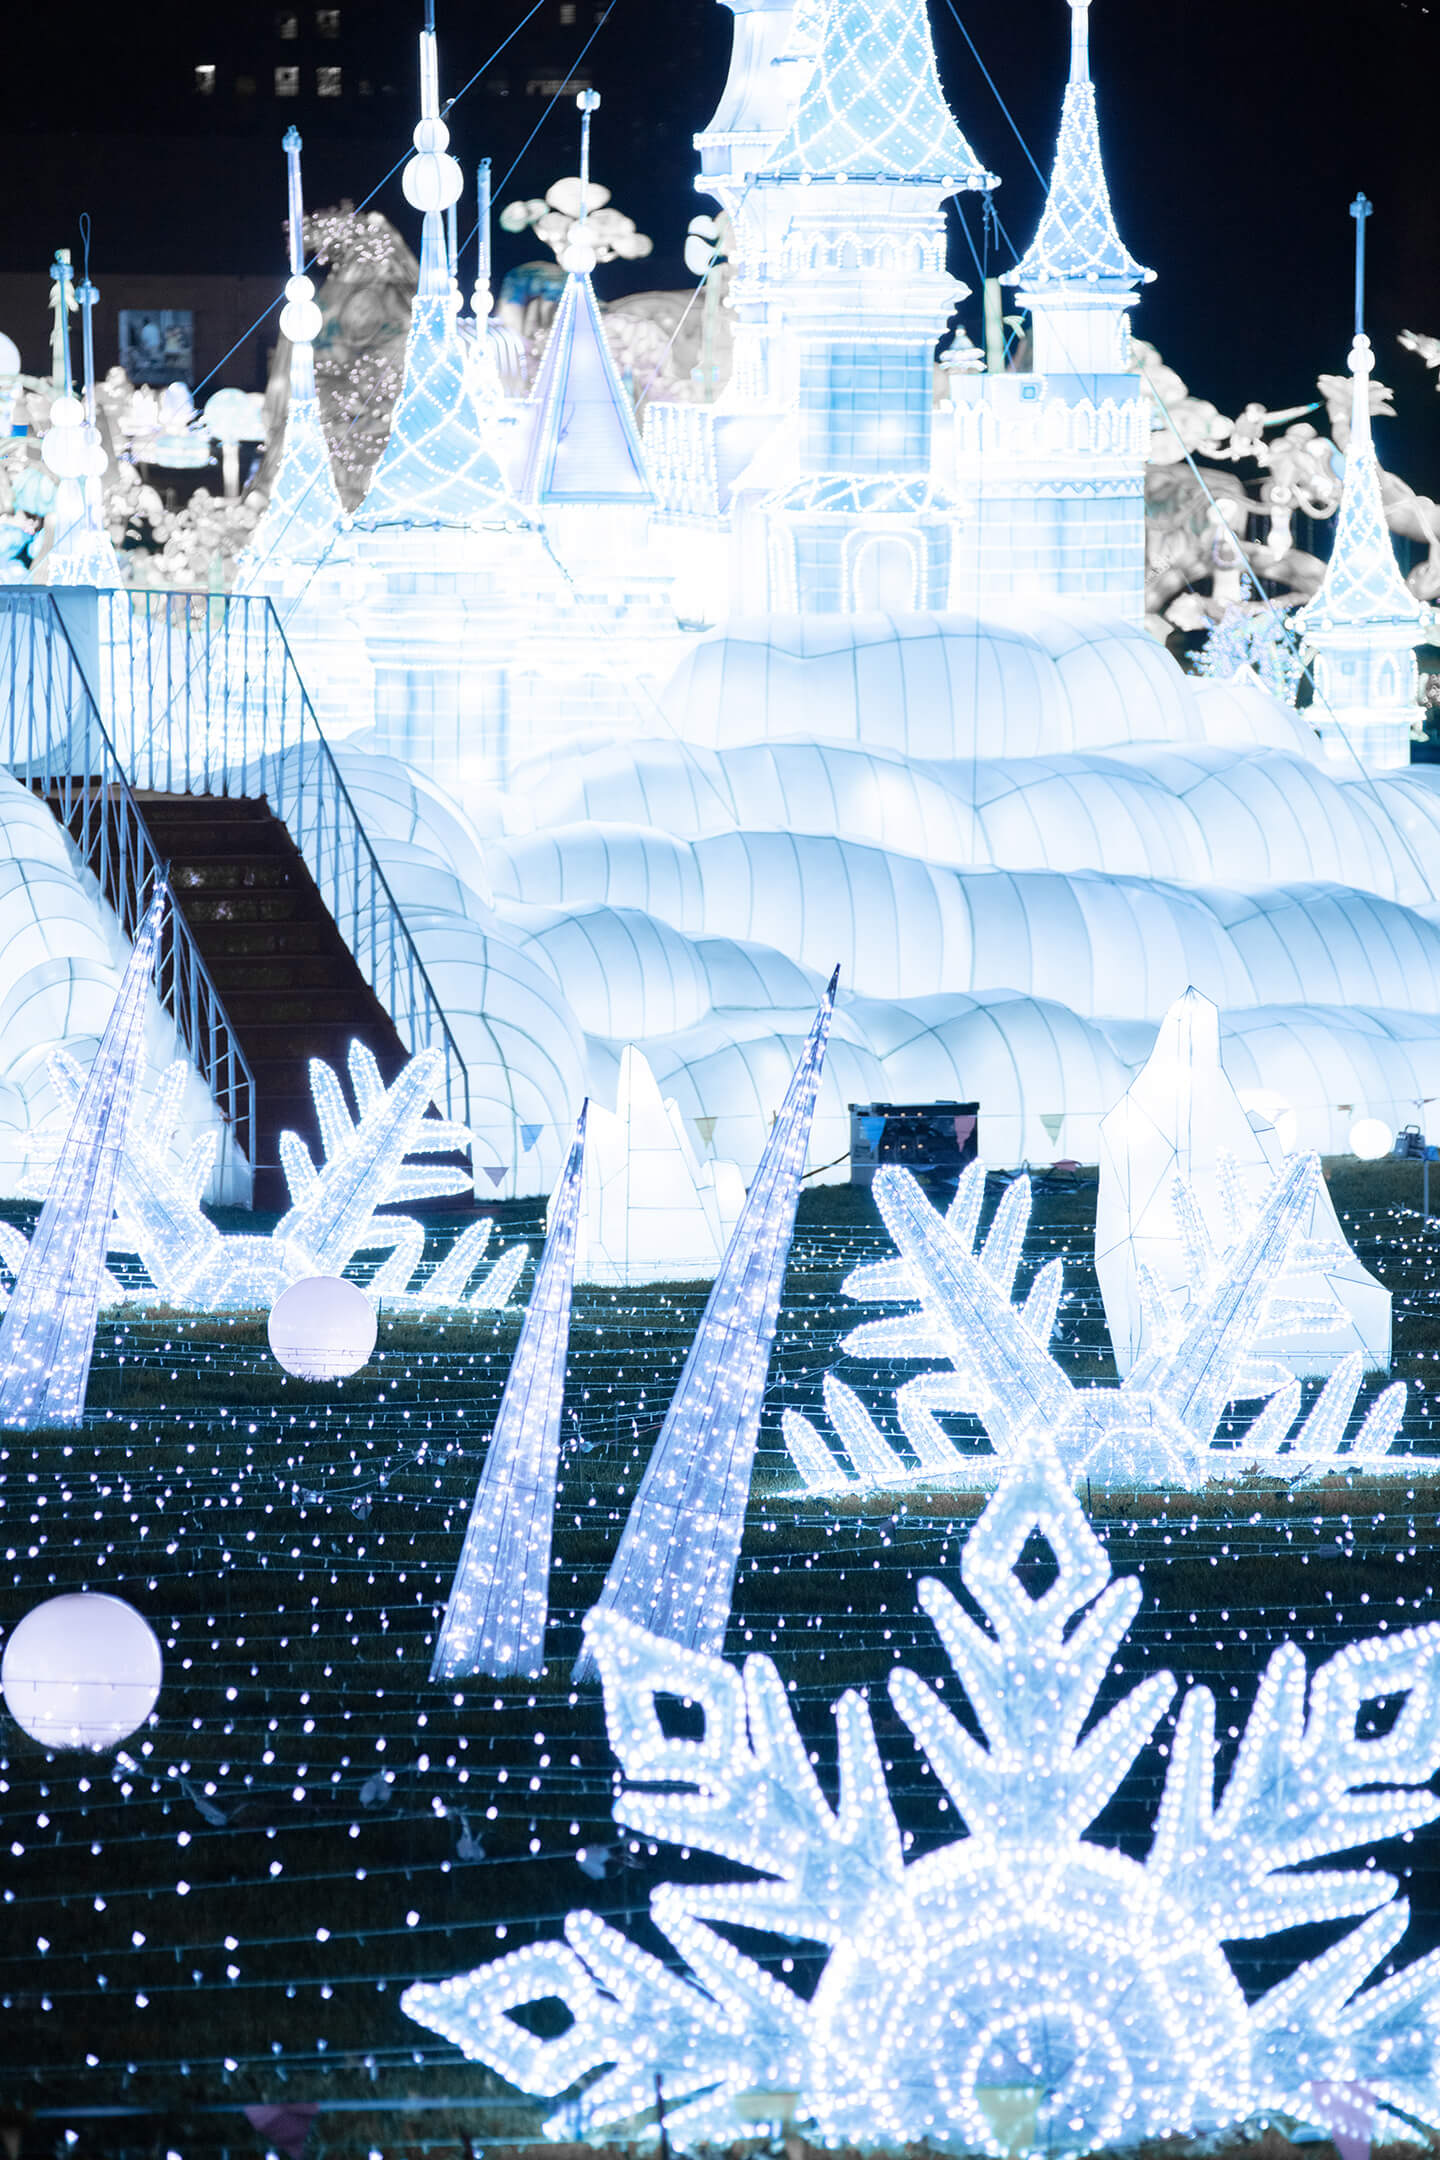 the-frozen-field-the-winter-fantasy-light-arts-luminocity-festival-rendered-image